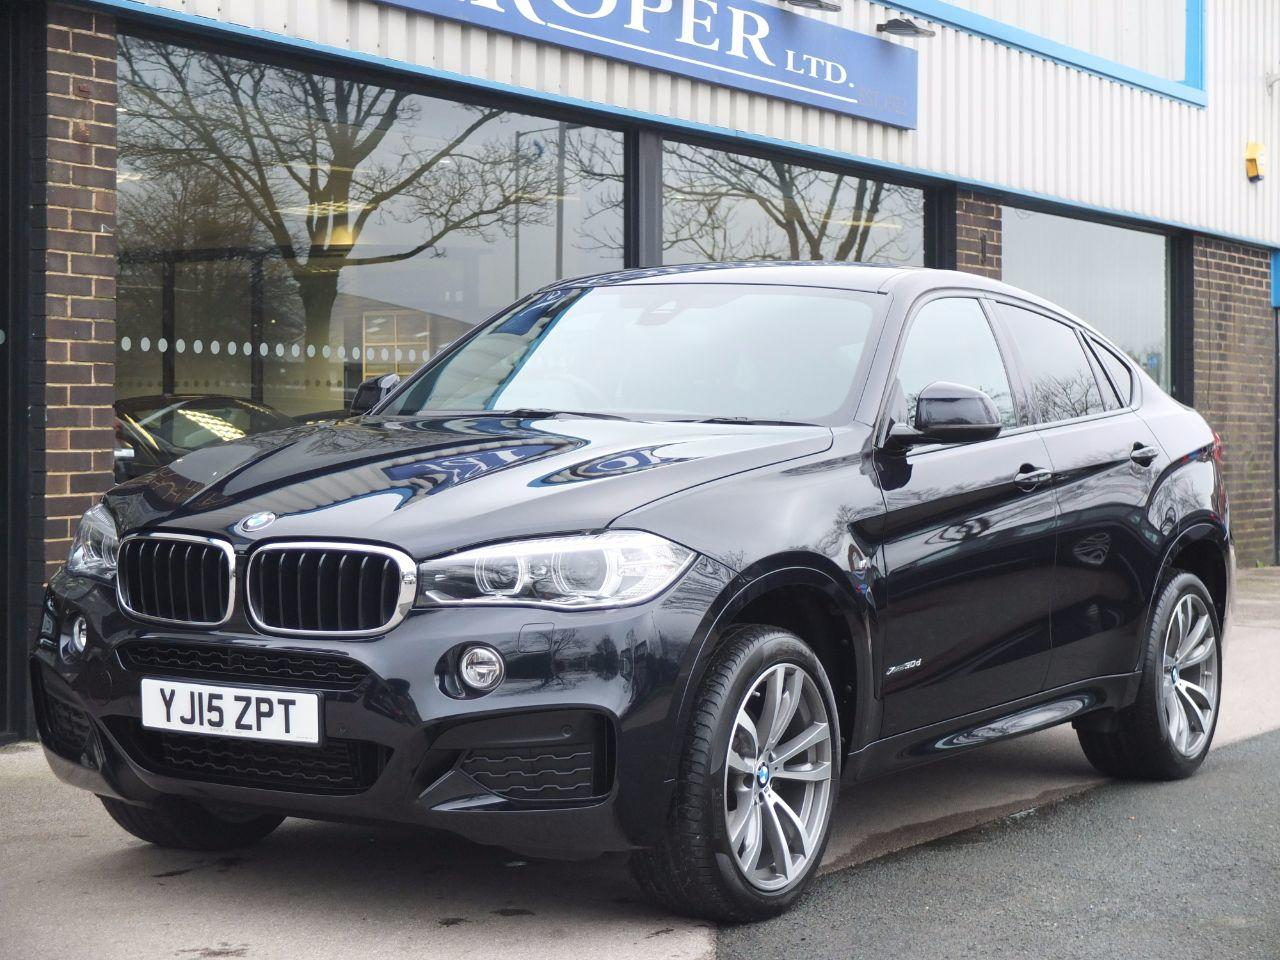 BMW X6 3.0 xDrive30d M Sport Auto Coupe Diesel Carbon Black MetallicBMW X6 3.0 xDrive30d M Sport Auto Coupe Diesel Carbon Black Metallic at fa Roper Ltd Bradford